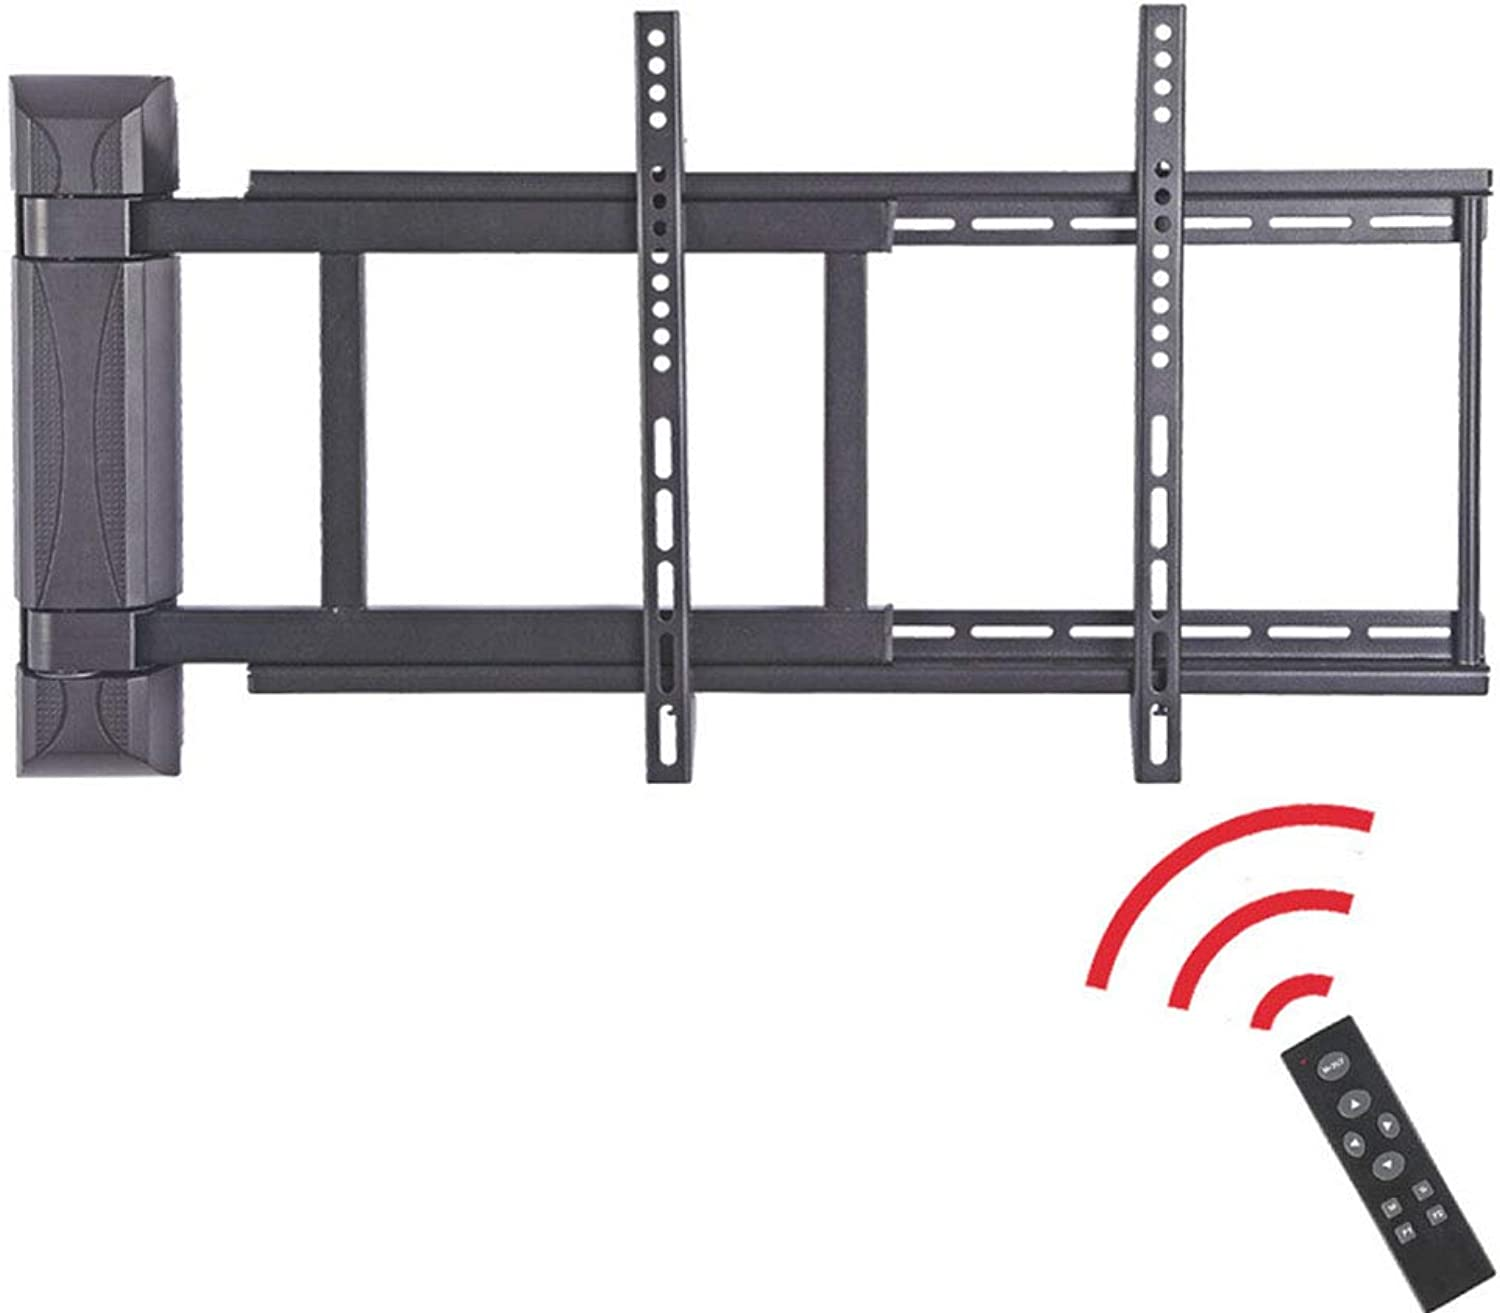 Remote Control TV Wall Bracket Mount,Electric redation for 3255 Inch LED LCD Plasma Flat Panels with Wheels Mobile 360o of Swivel Classroom Meeting Room Video Call